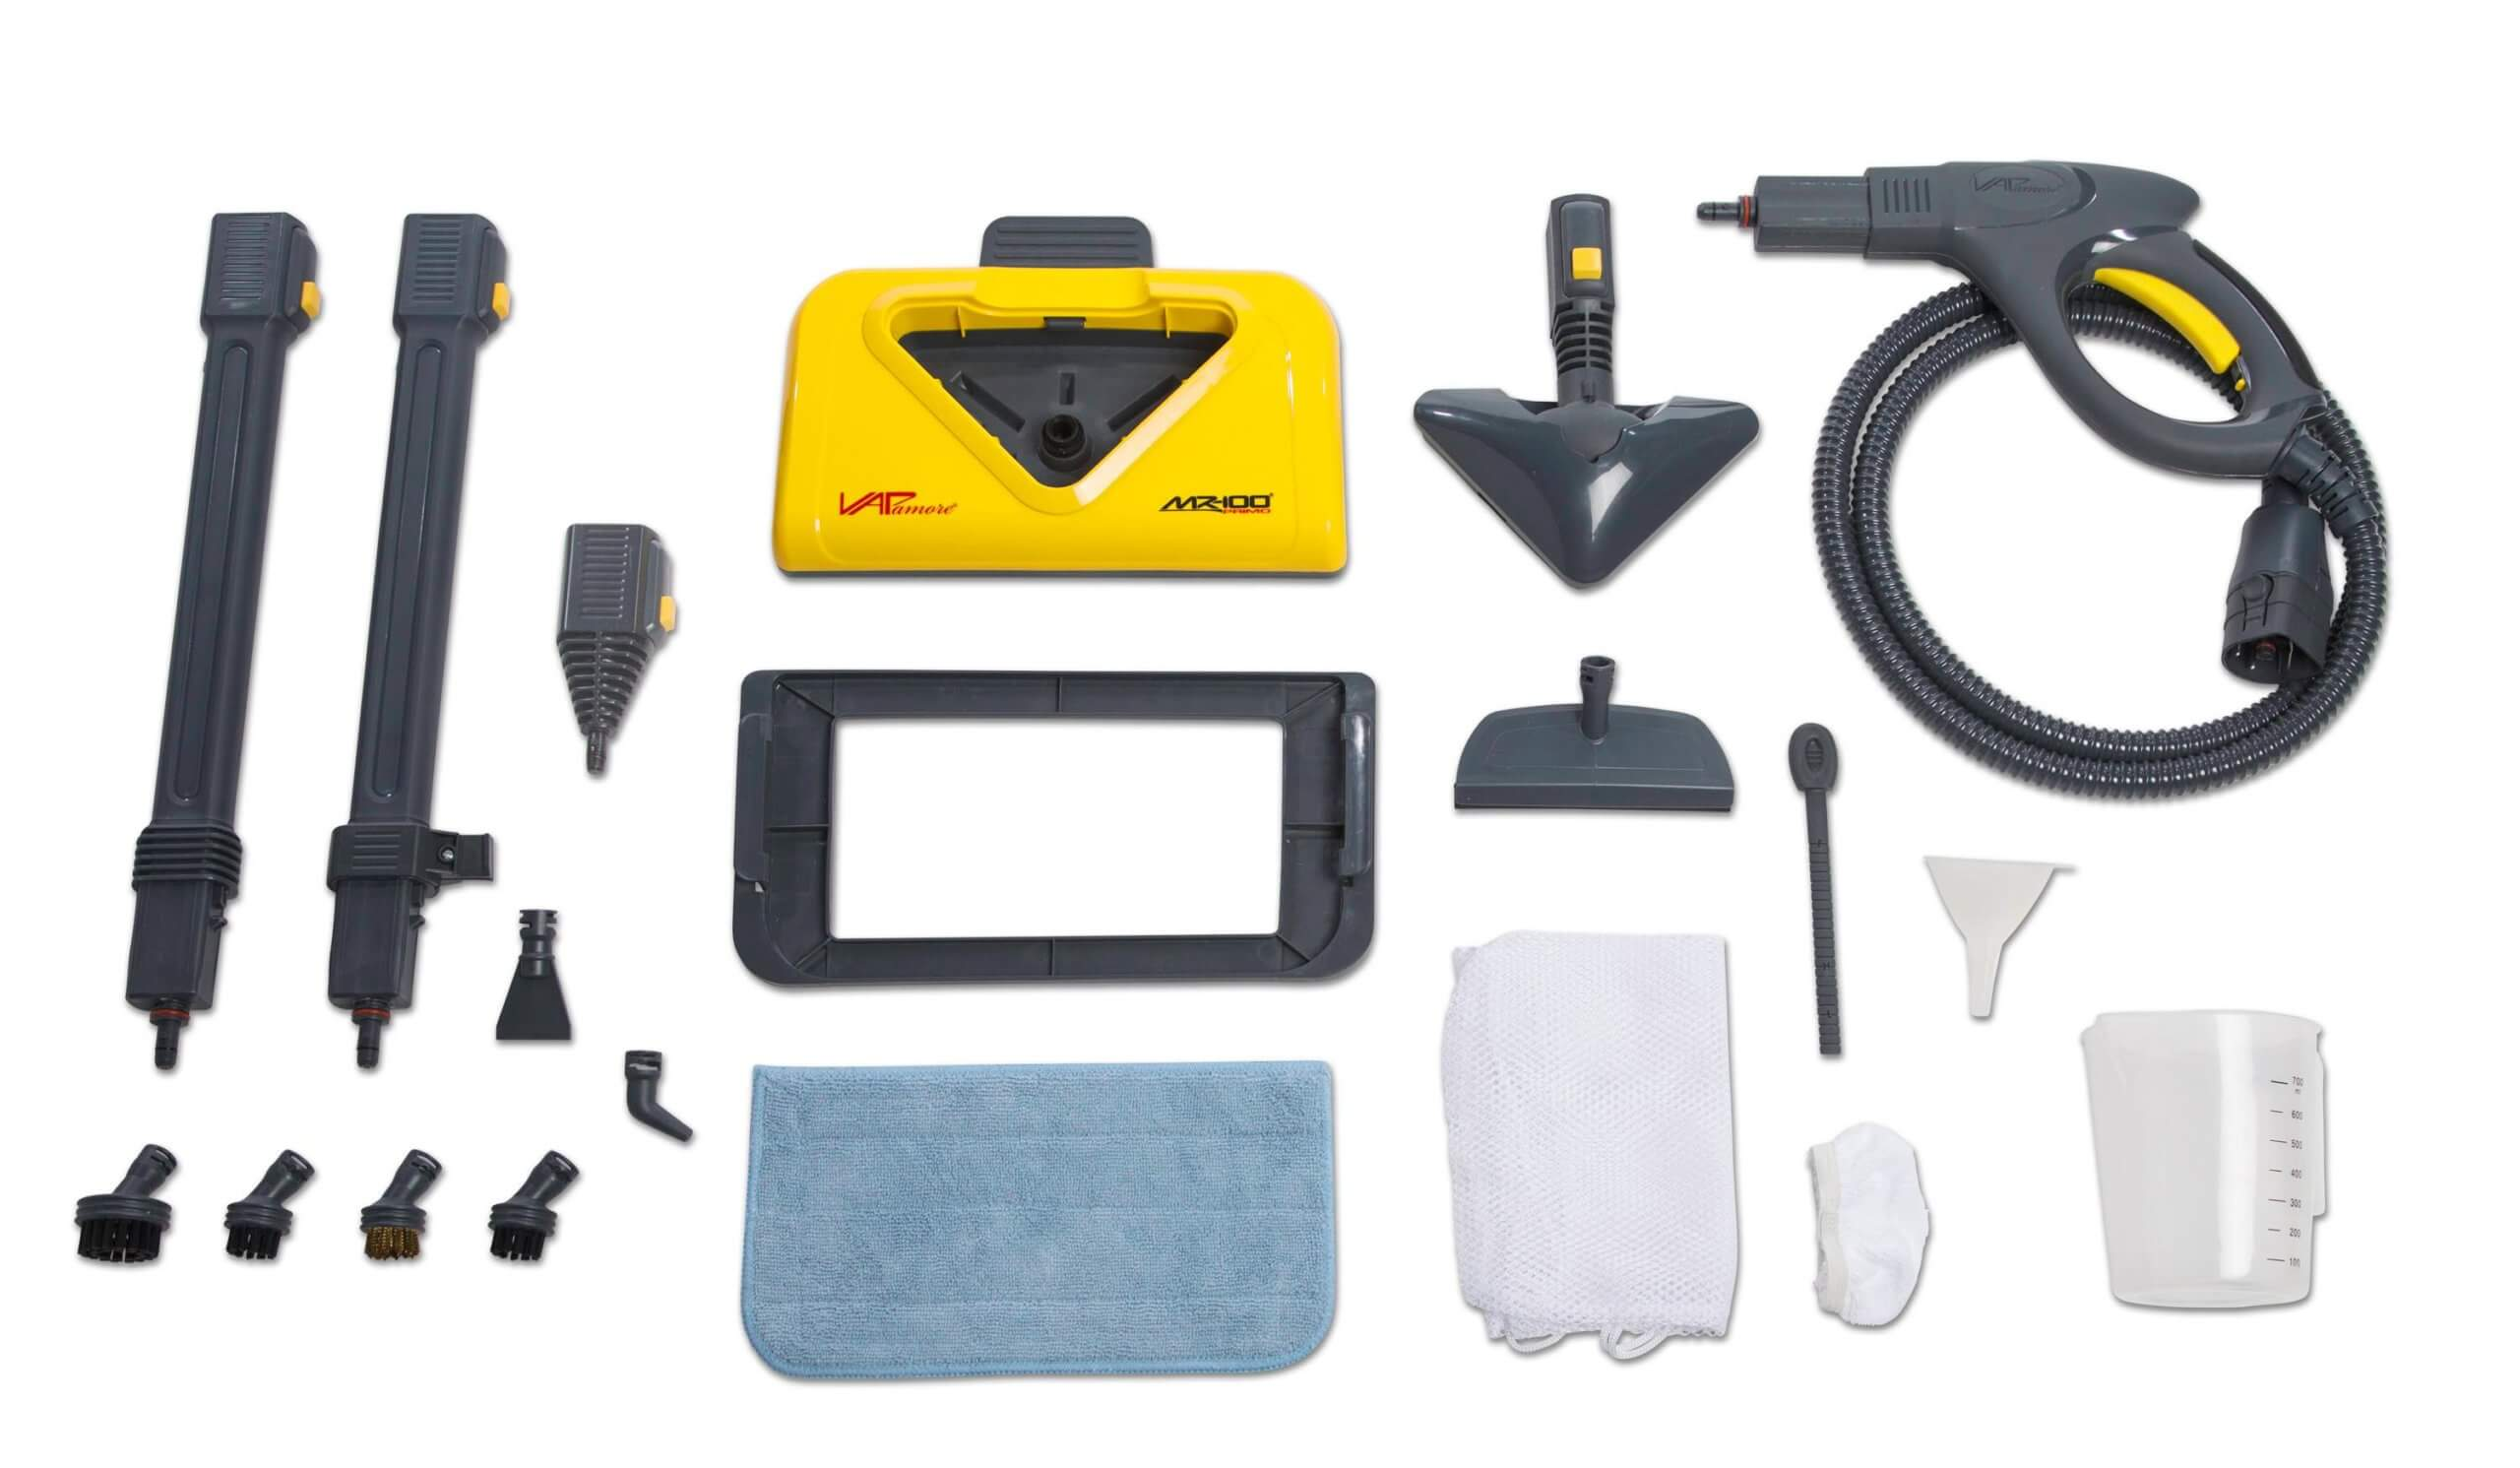 Vapamore MR-100 Primo Steam Cleaning System accessories